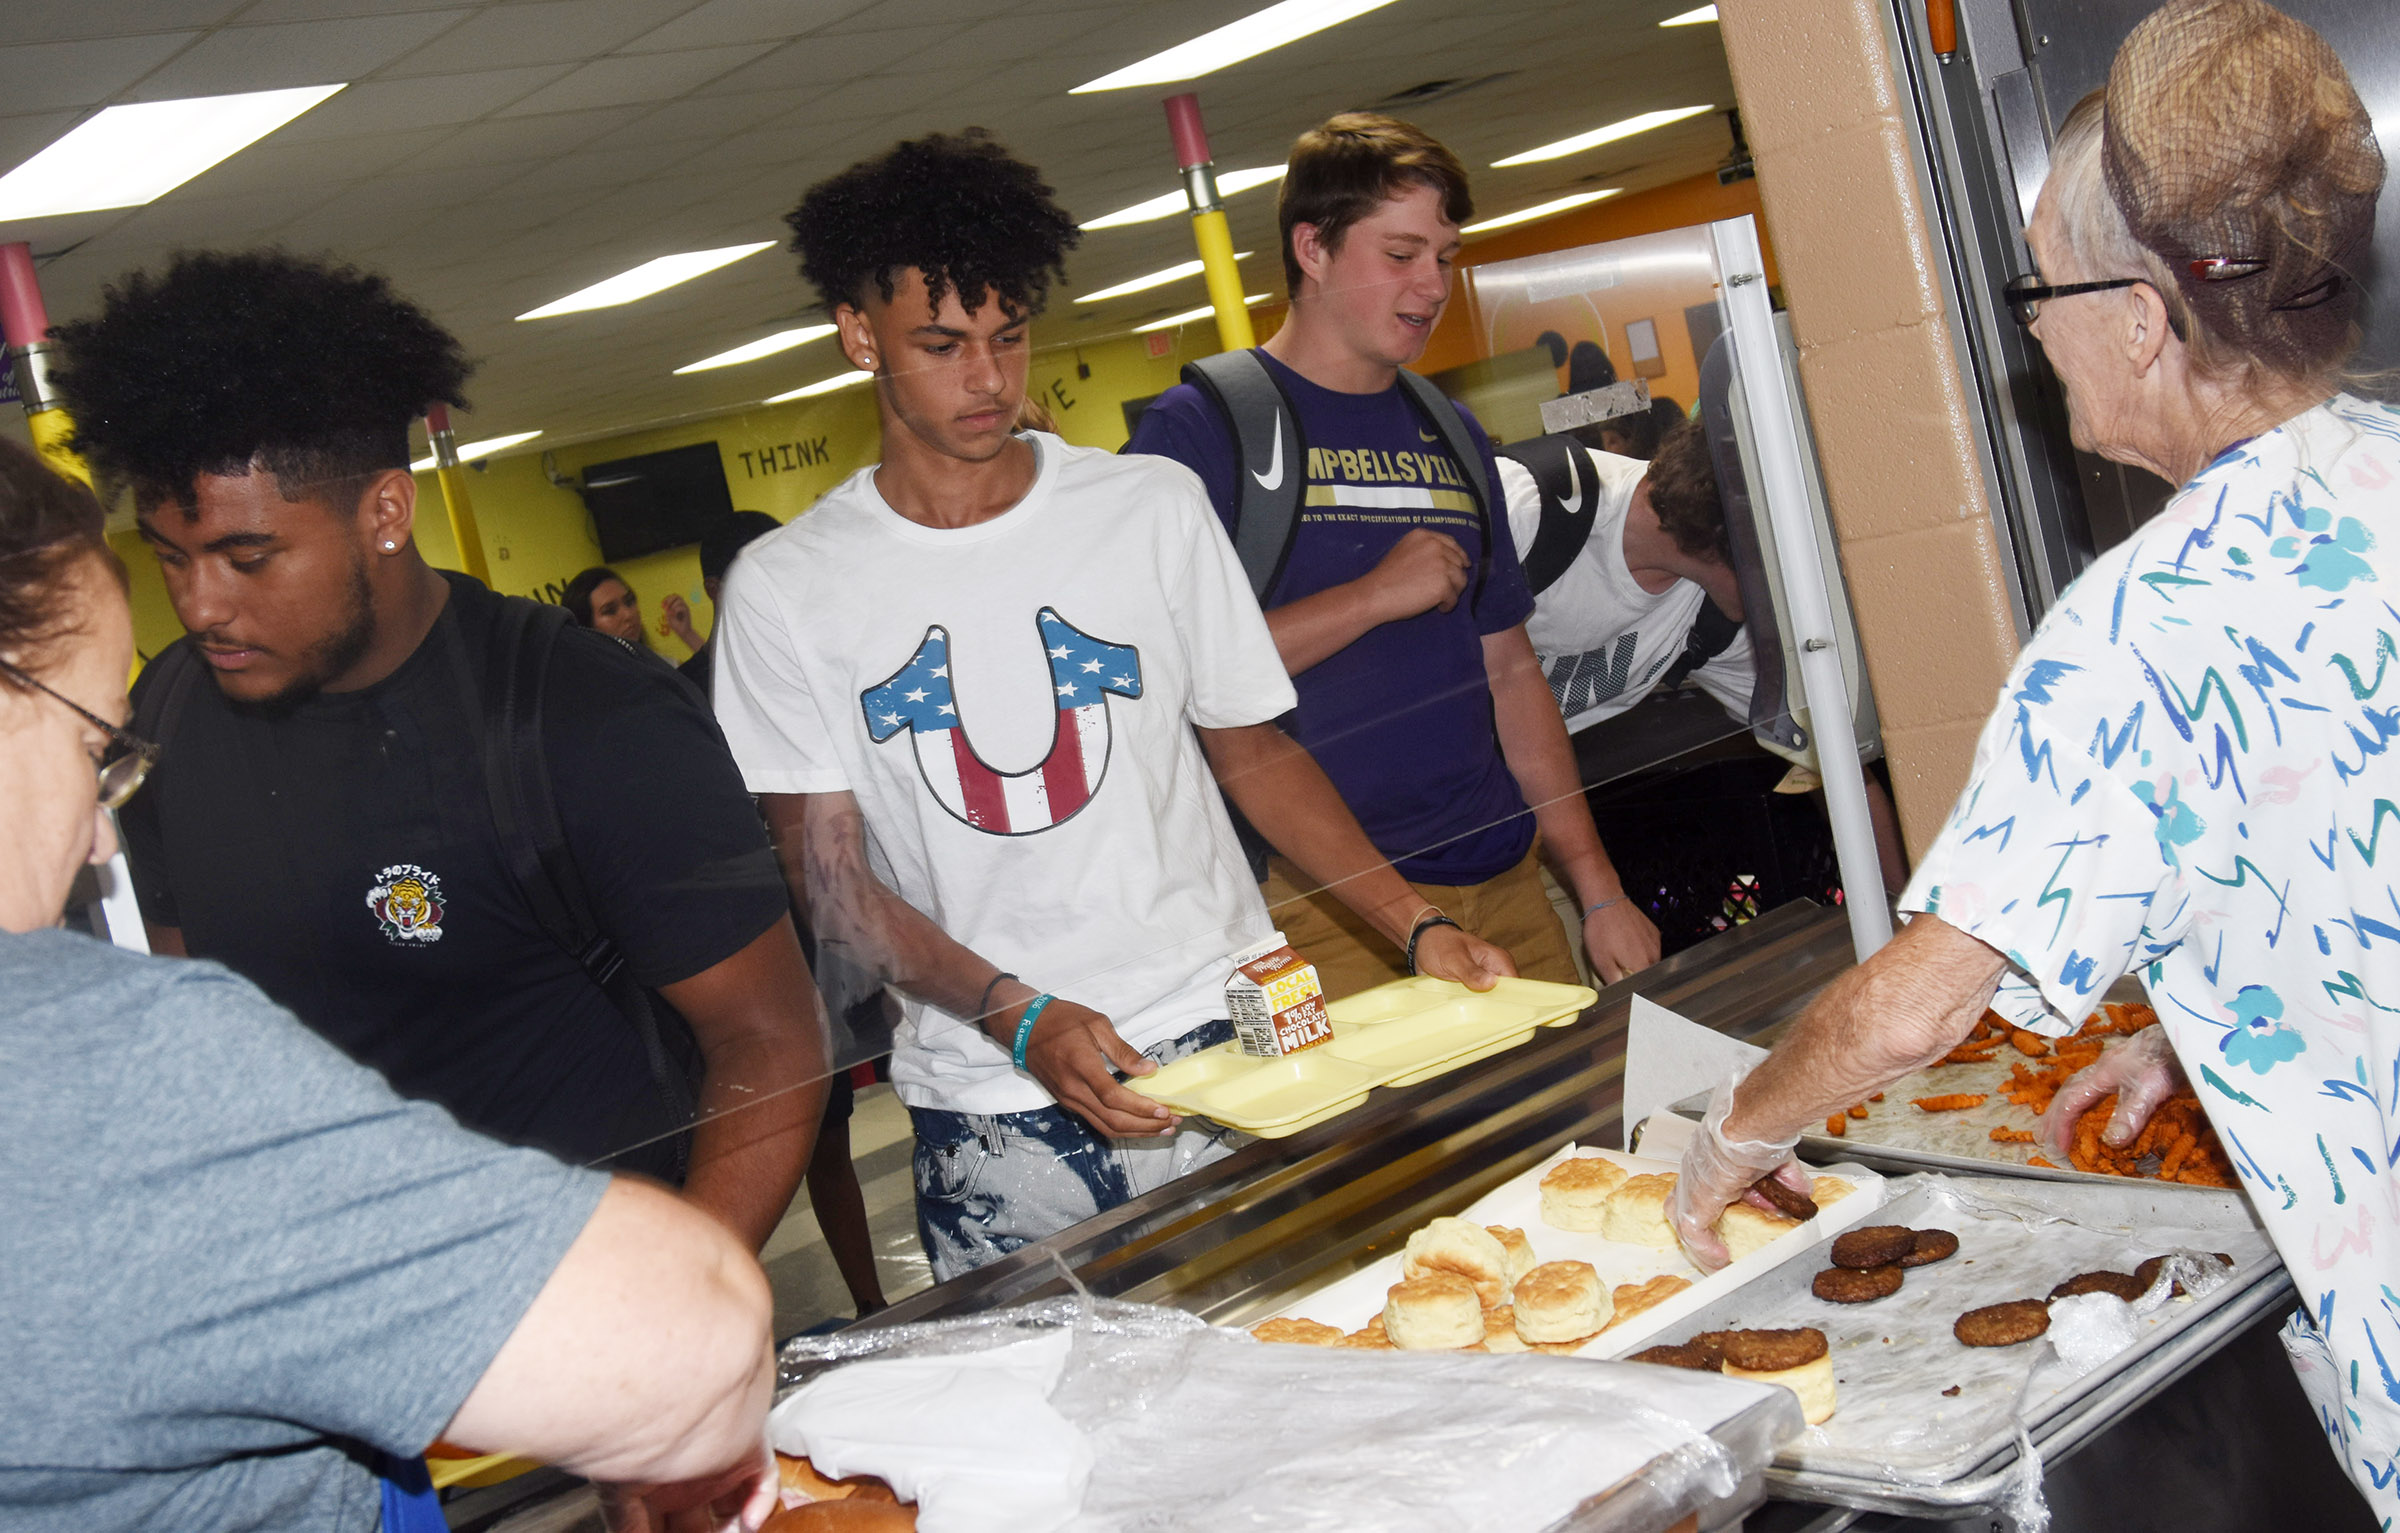 From left, Campbellsville High School junior Braden Paige, Mikael Vaught and Dillon Whitaker are served lunch.